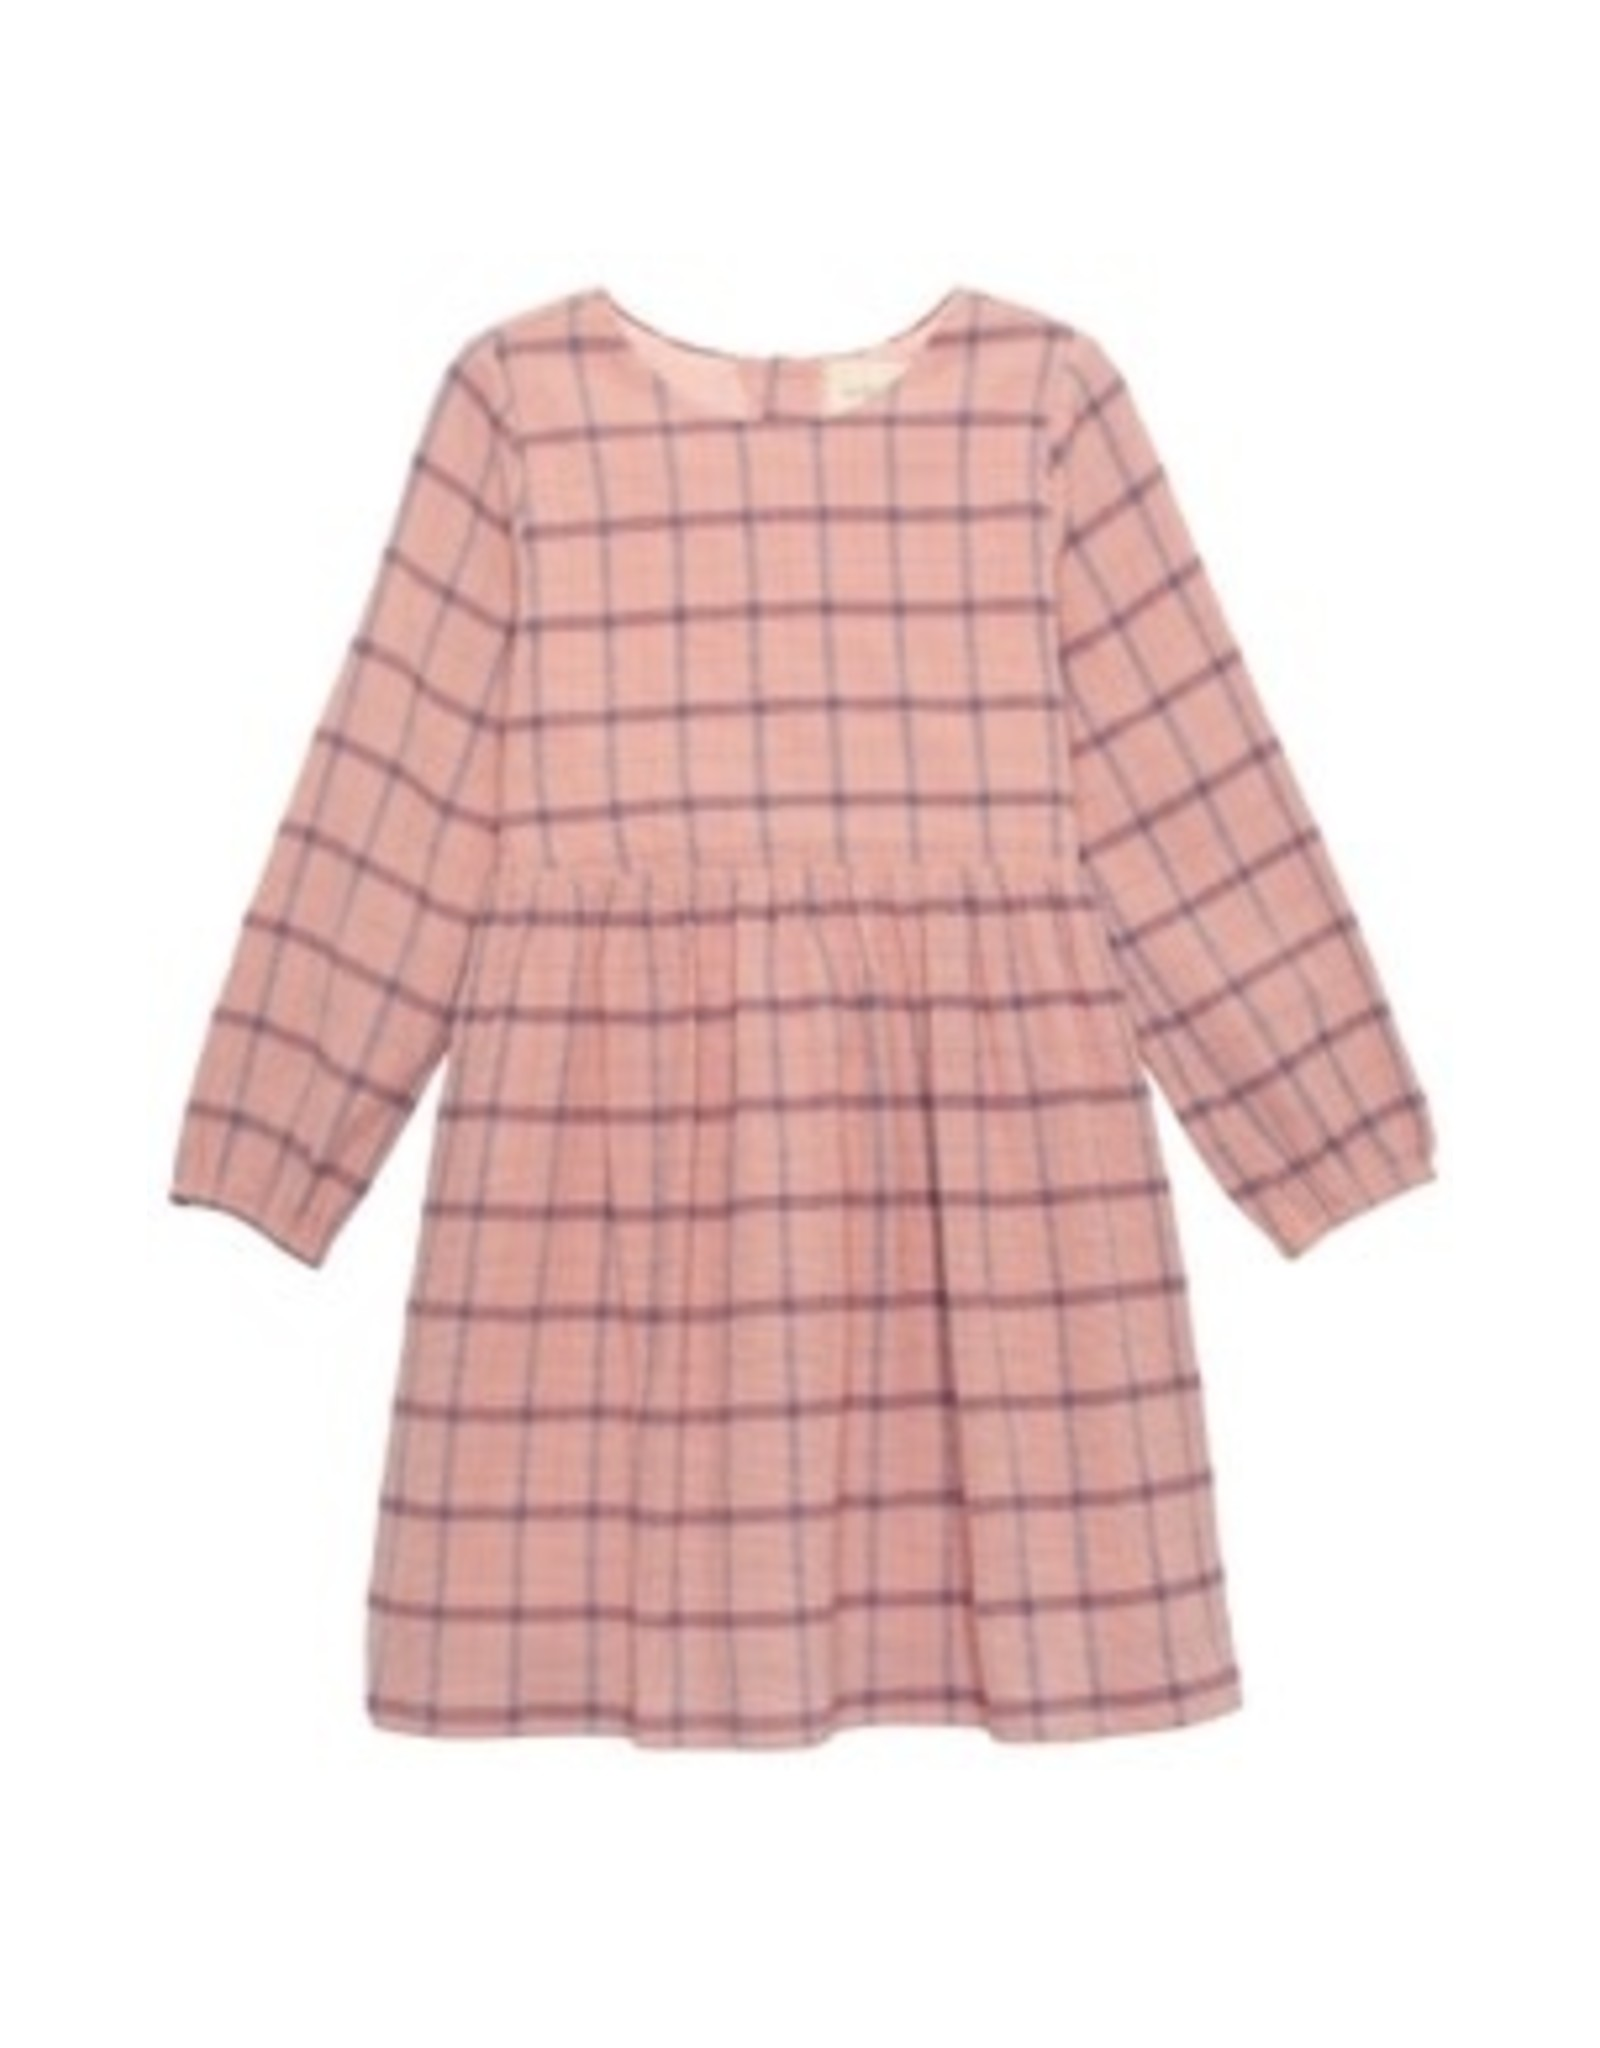 Mabel & Honey Mabel & Honey- Into the Field Woven Plaid Dress